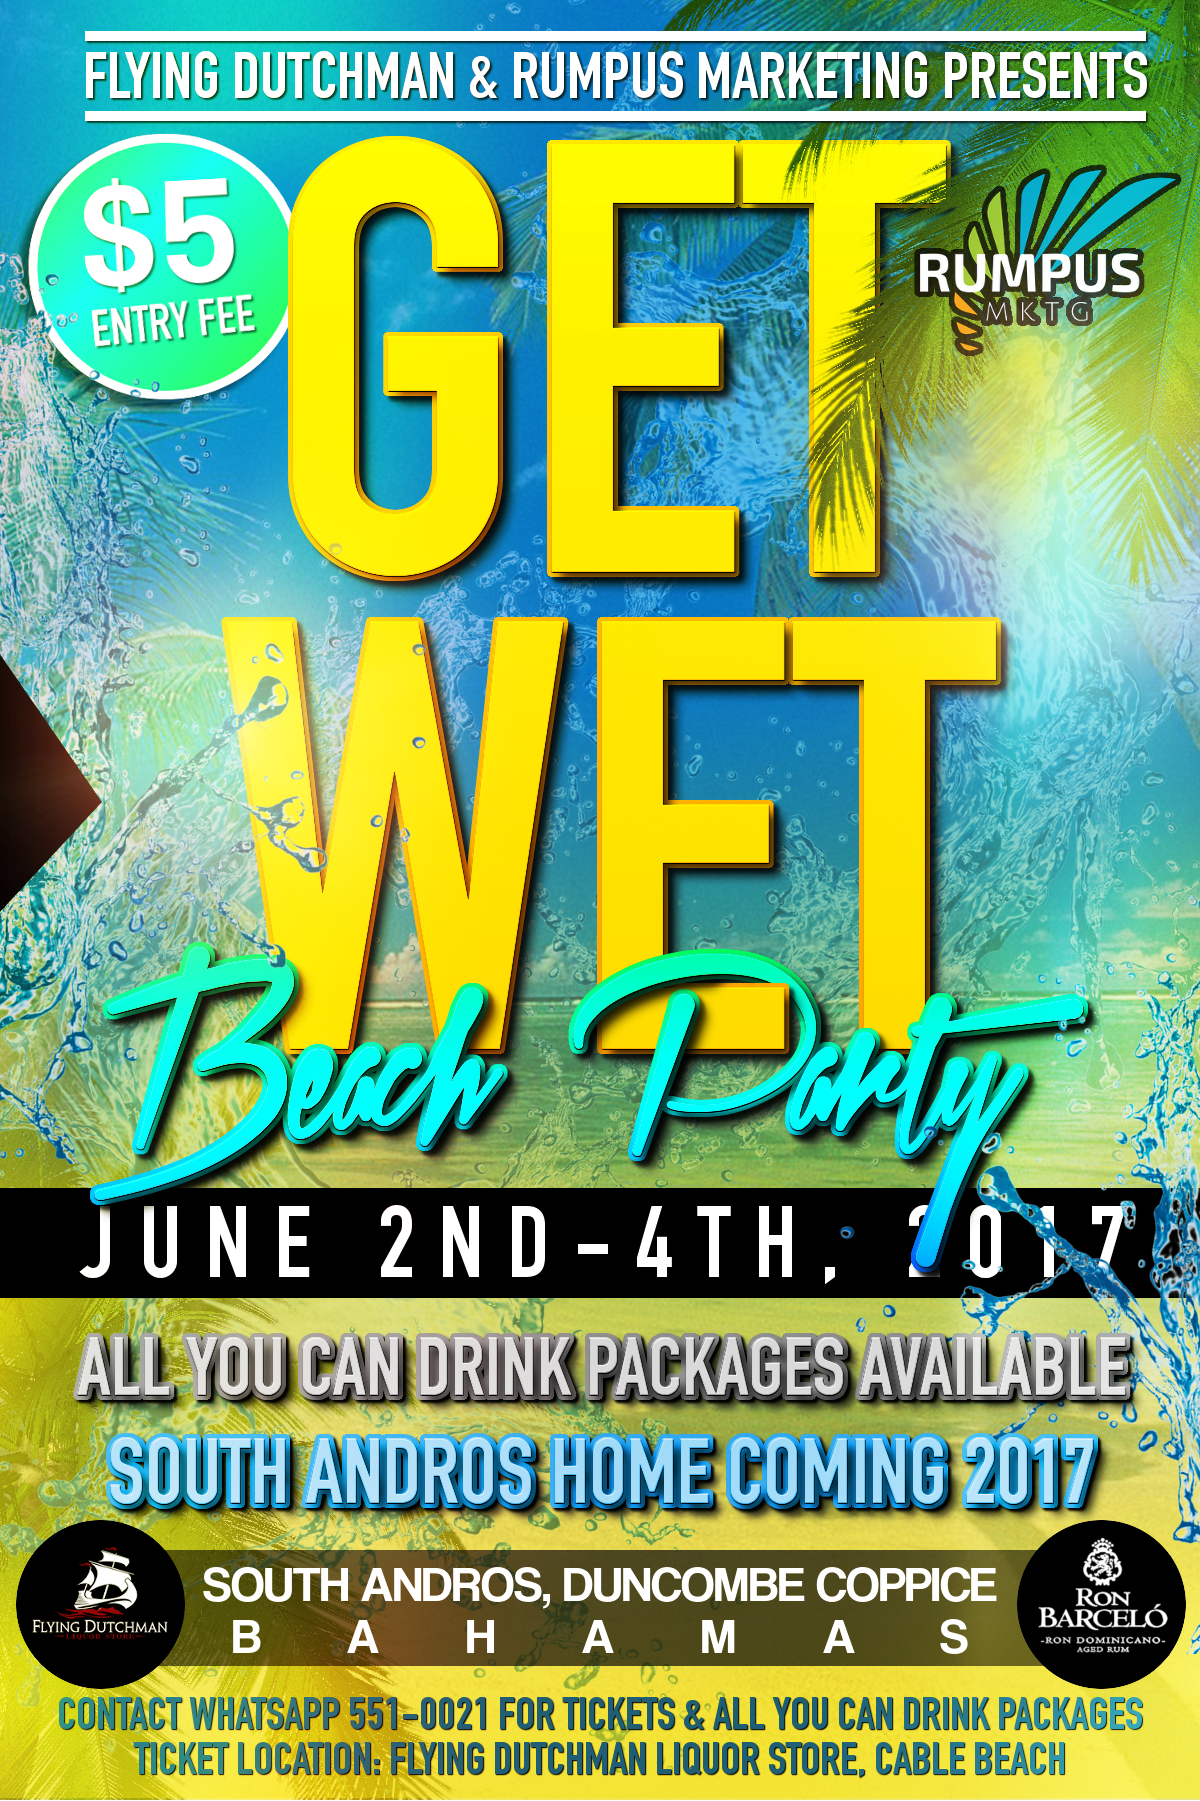 South Andros Homecoming GET WET Beach Party